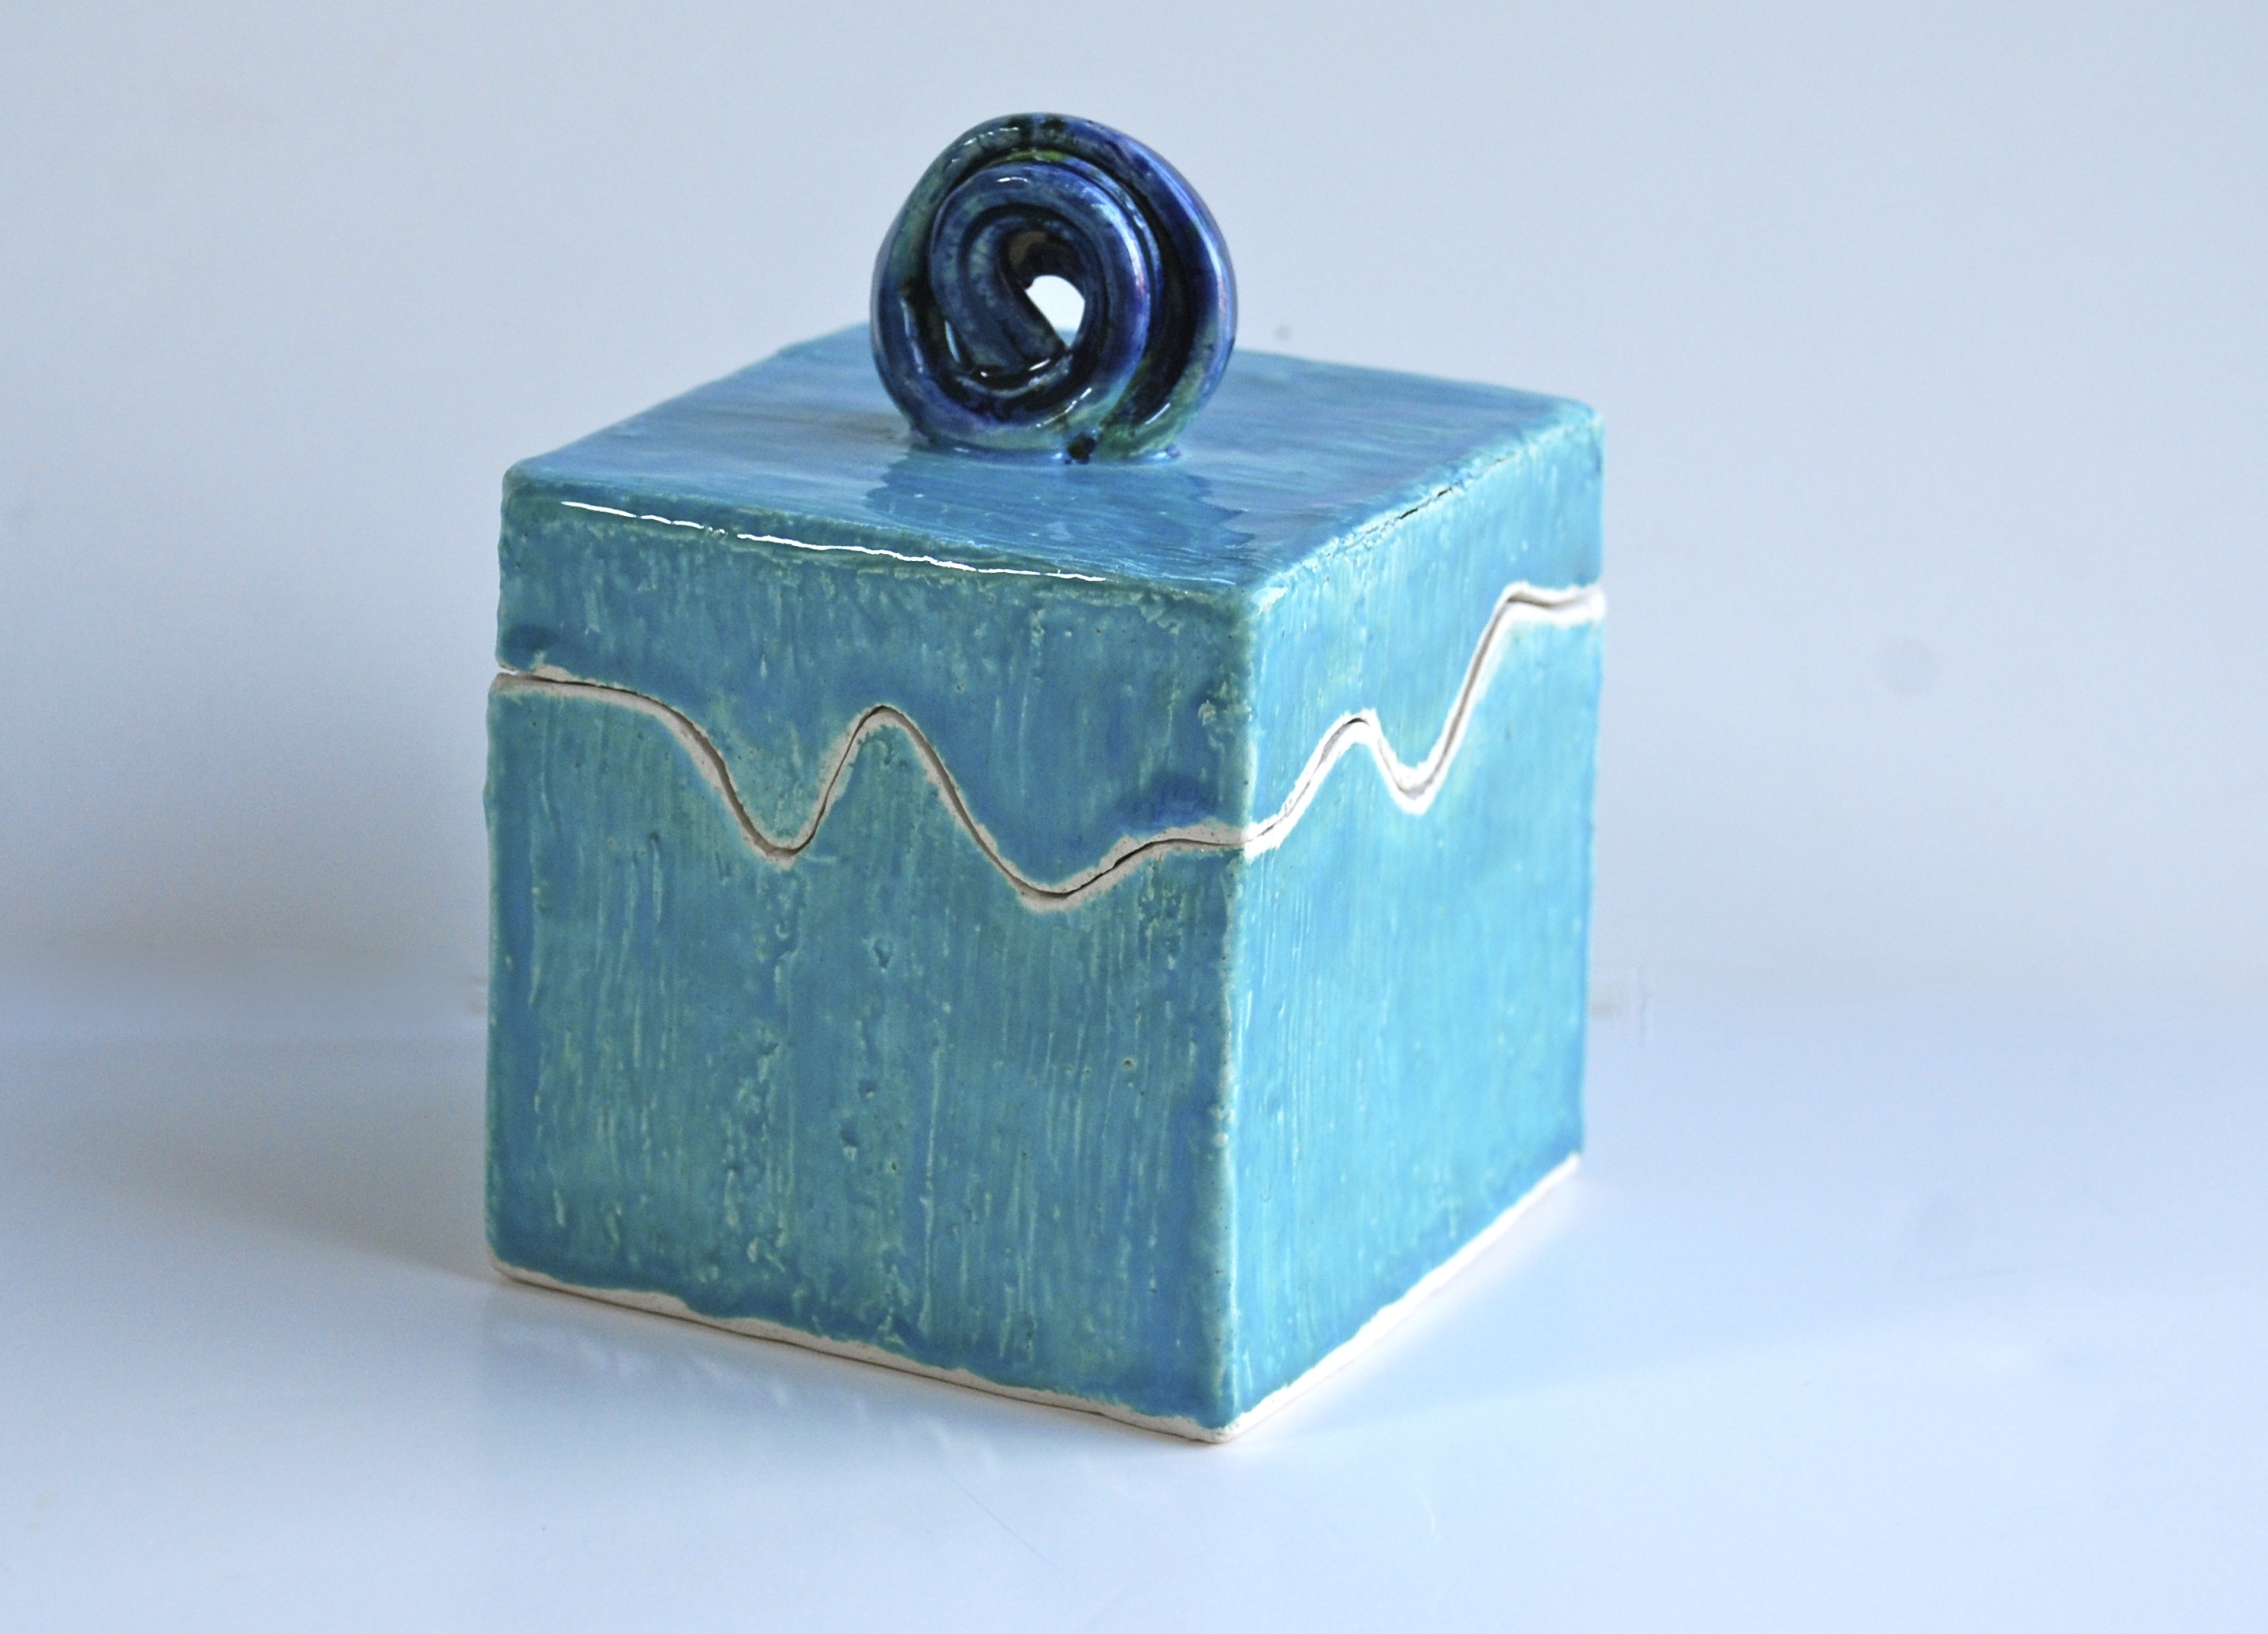 Incredible unique handmade ceramic lidded boxes